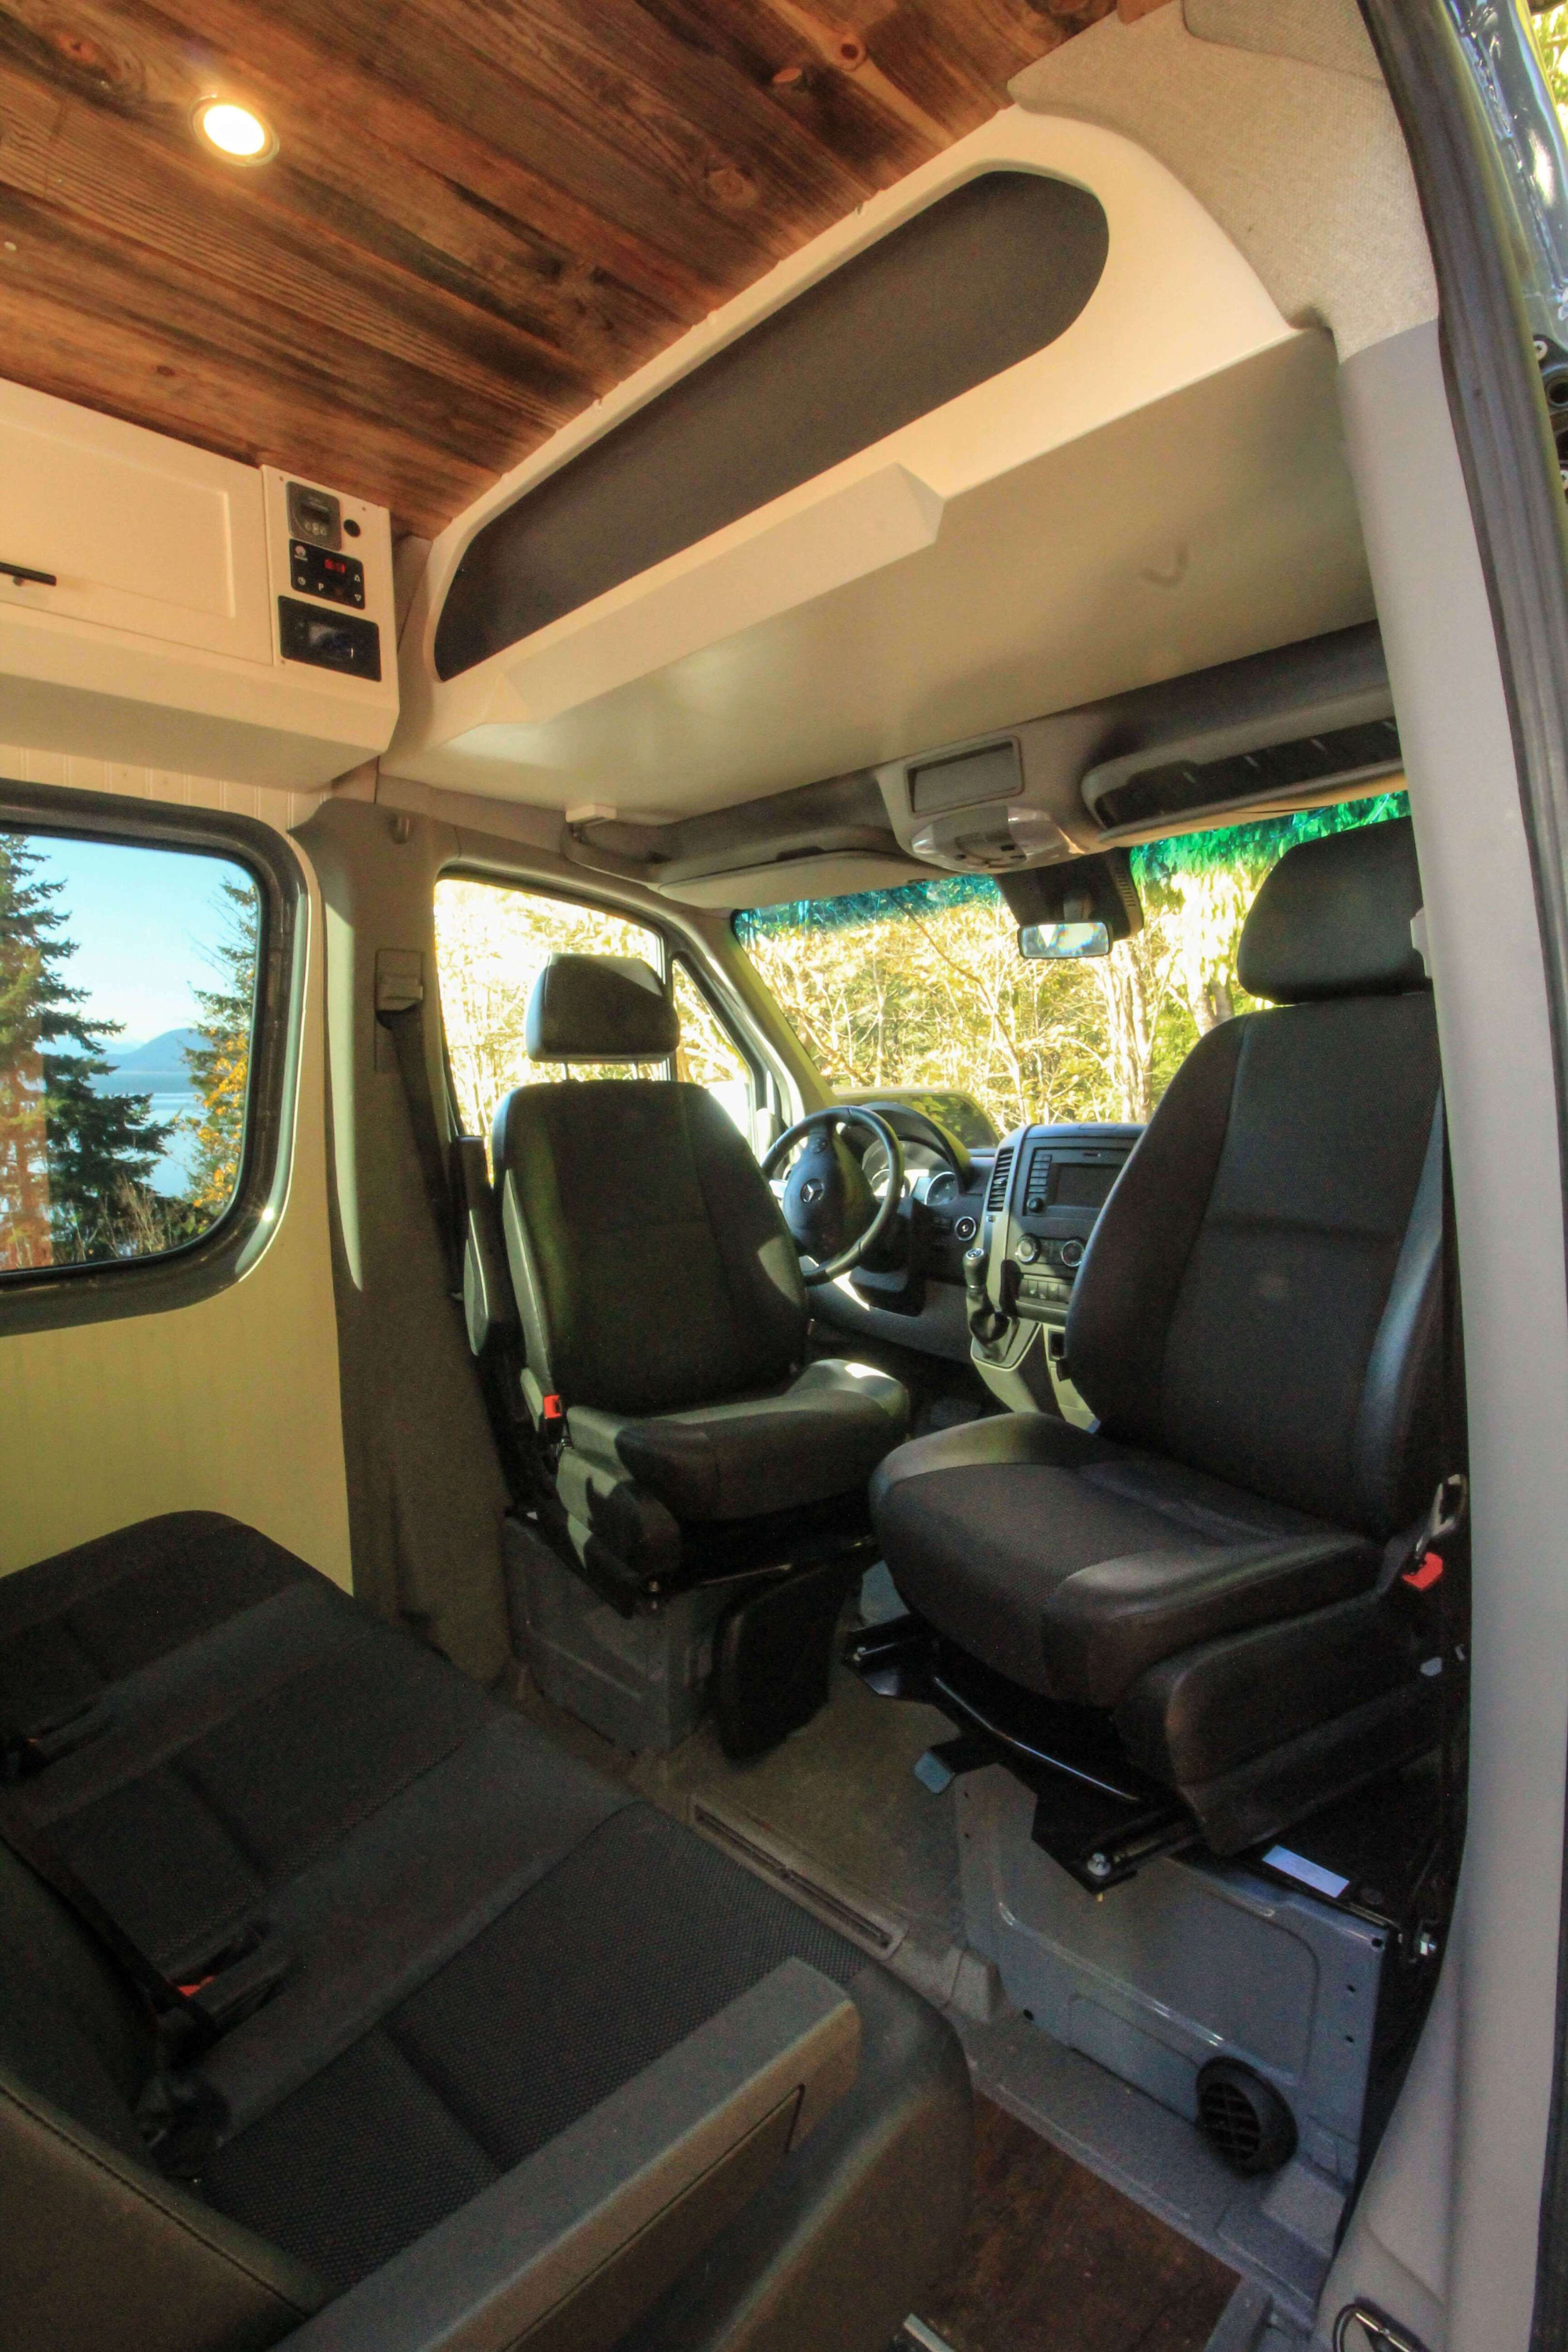 The Family Van Conversion Freedom Vans Camper Van Conversion Diy Ford Transit Camper Van Conversion Interior